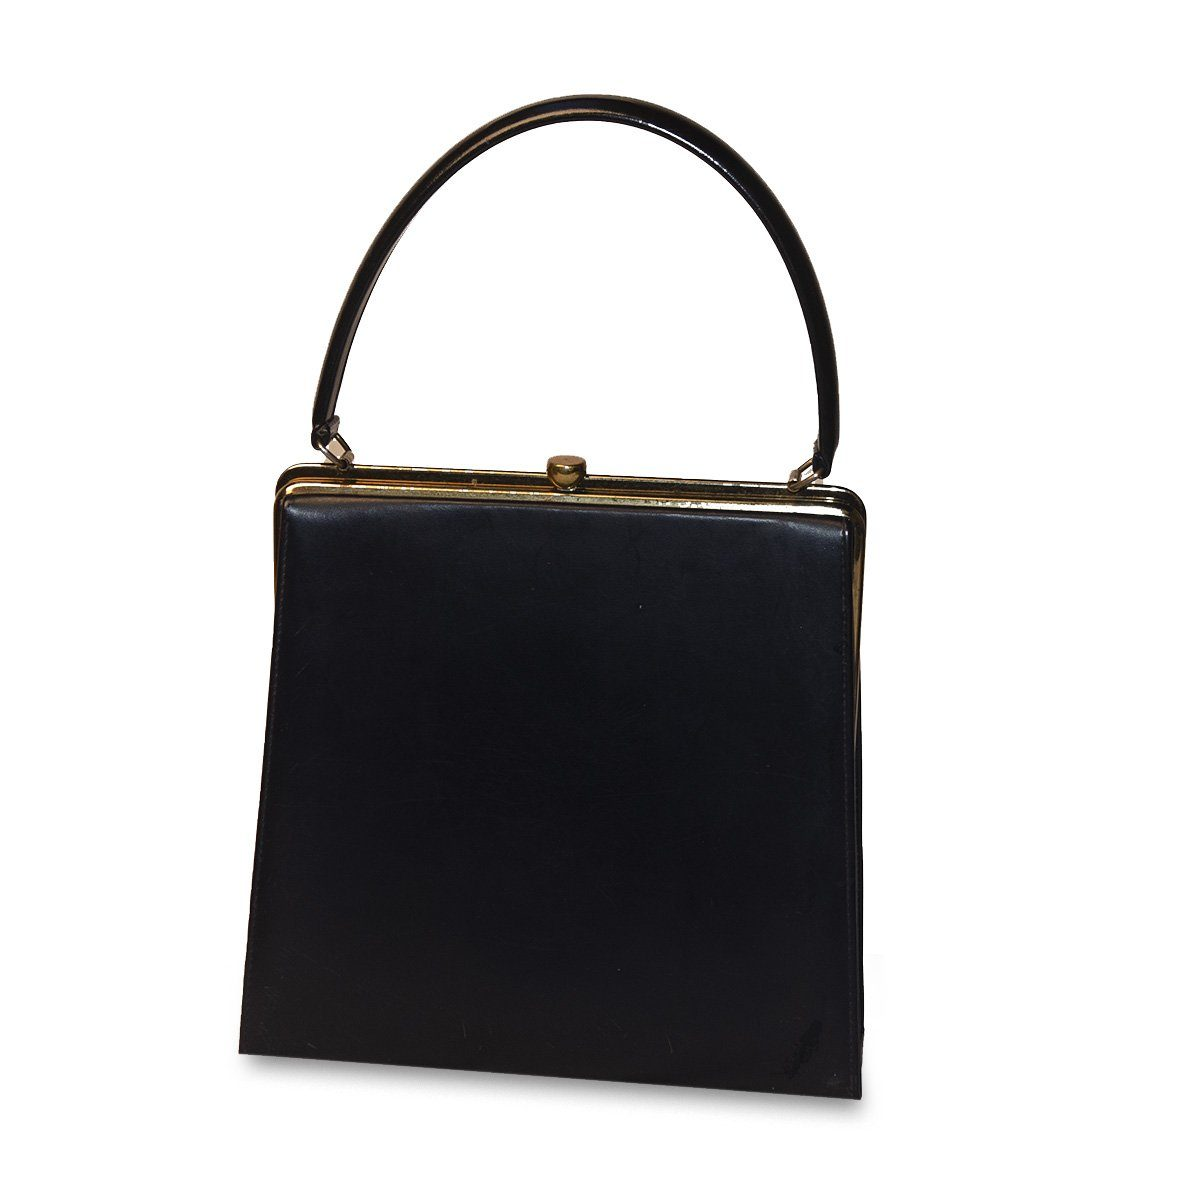 1950s Navy Blue Structured Handbag, Gold Hardware